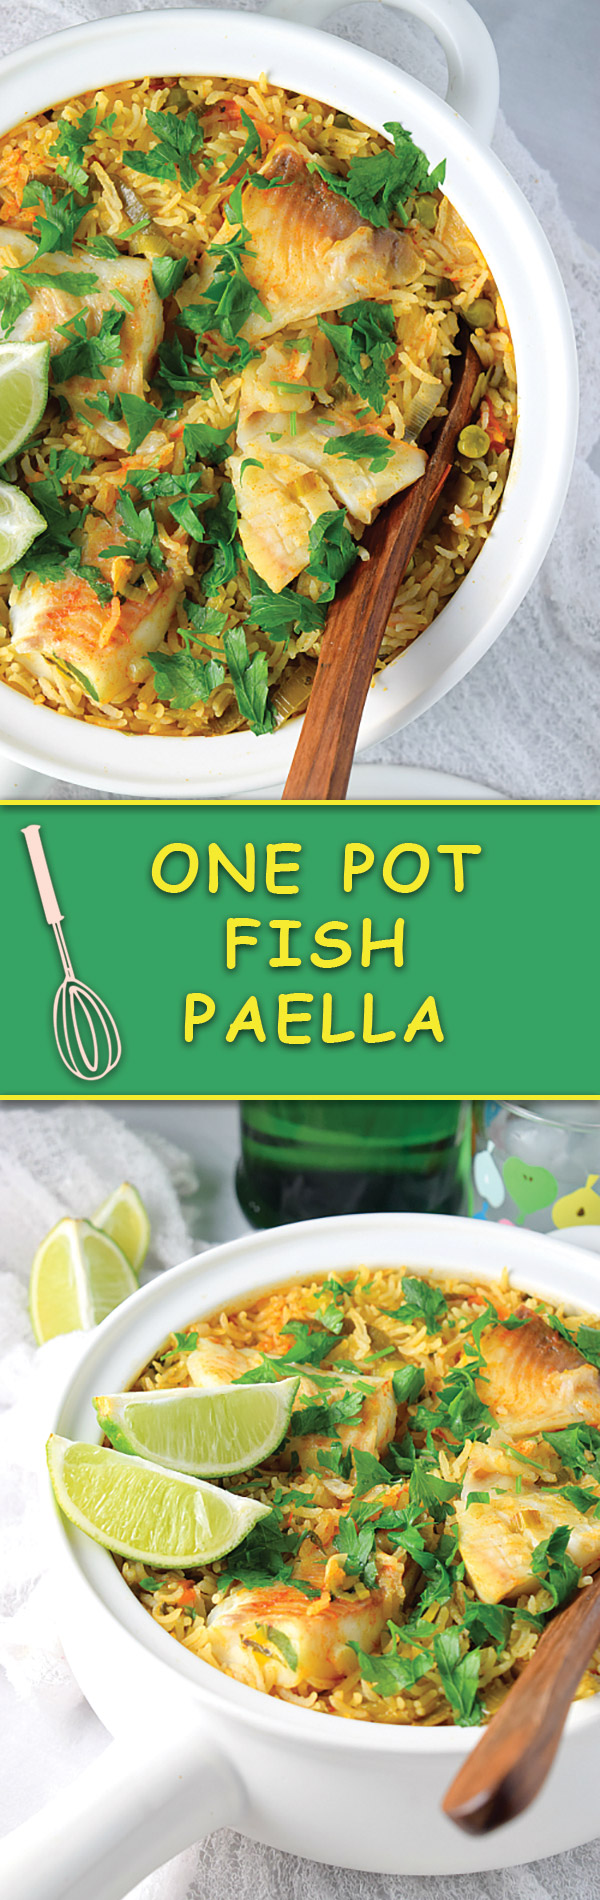 One Pot Fish Paella - a simple light ONE POT meal that takes just few minutes to assemble and is one of our most popular pin of all time! Try for yourself.